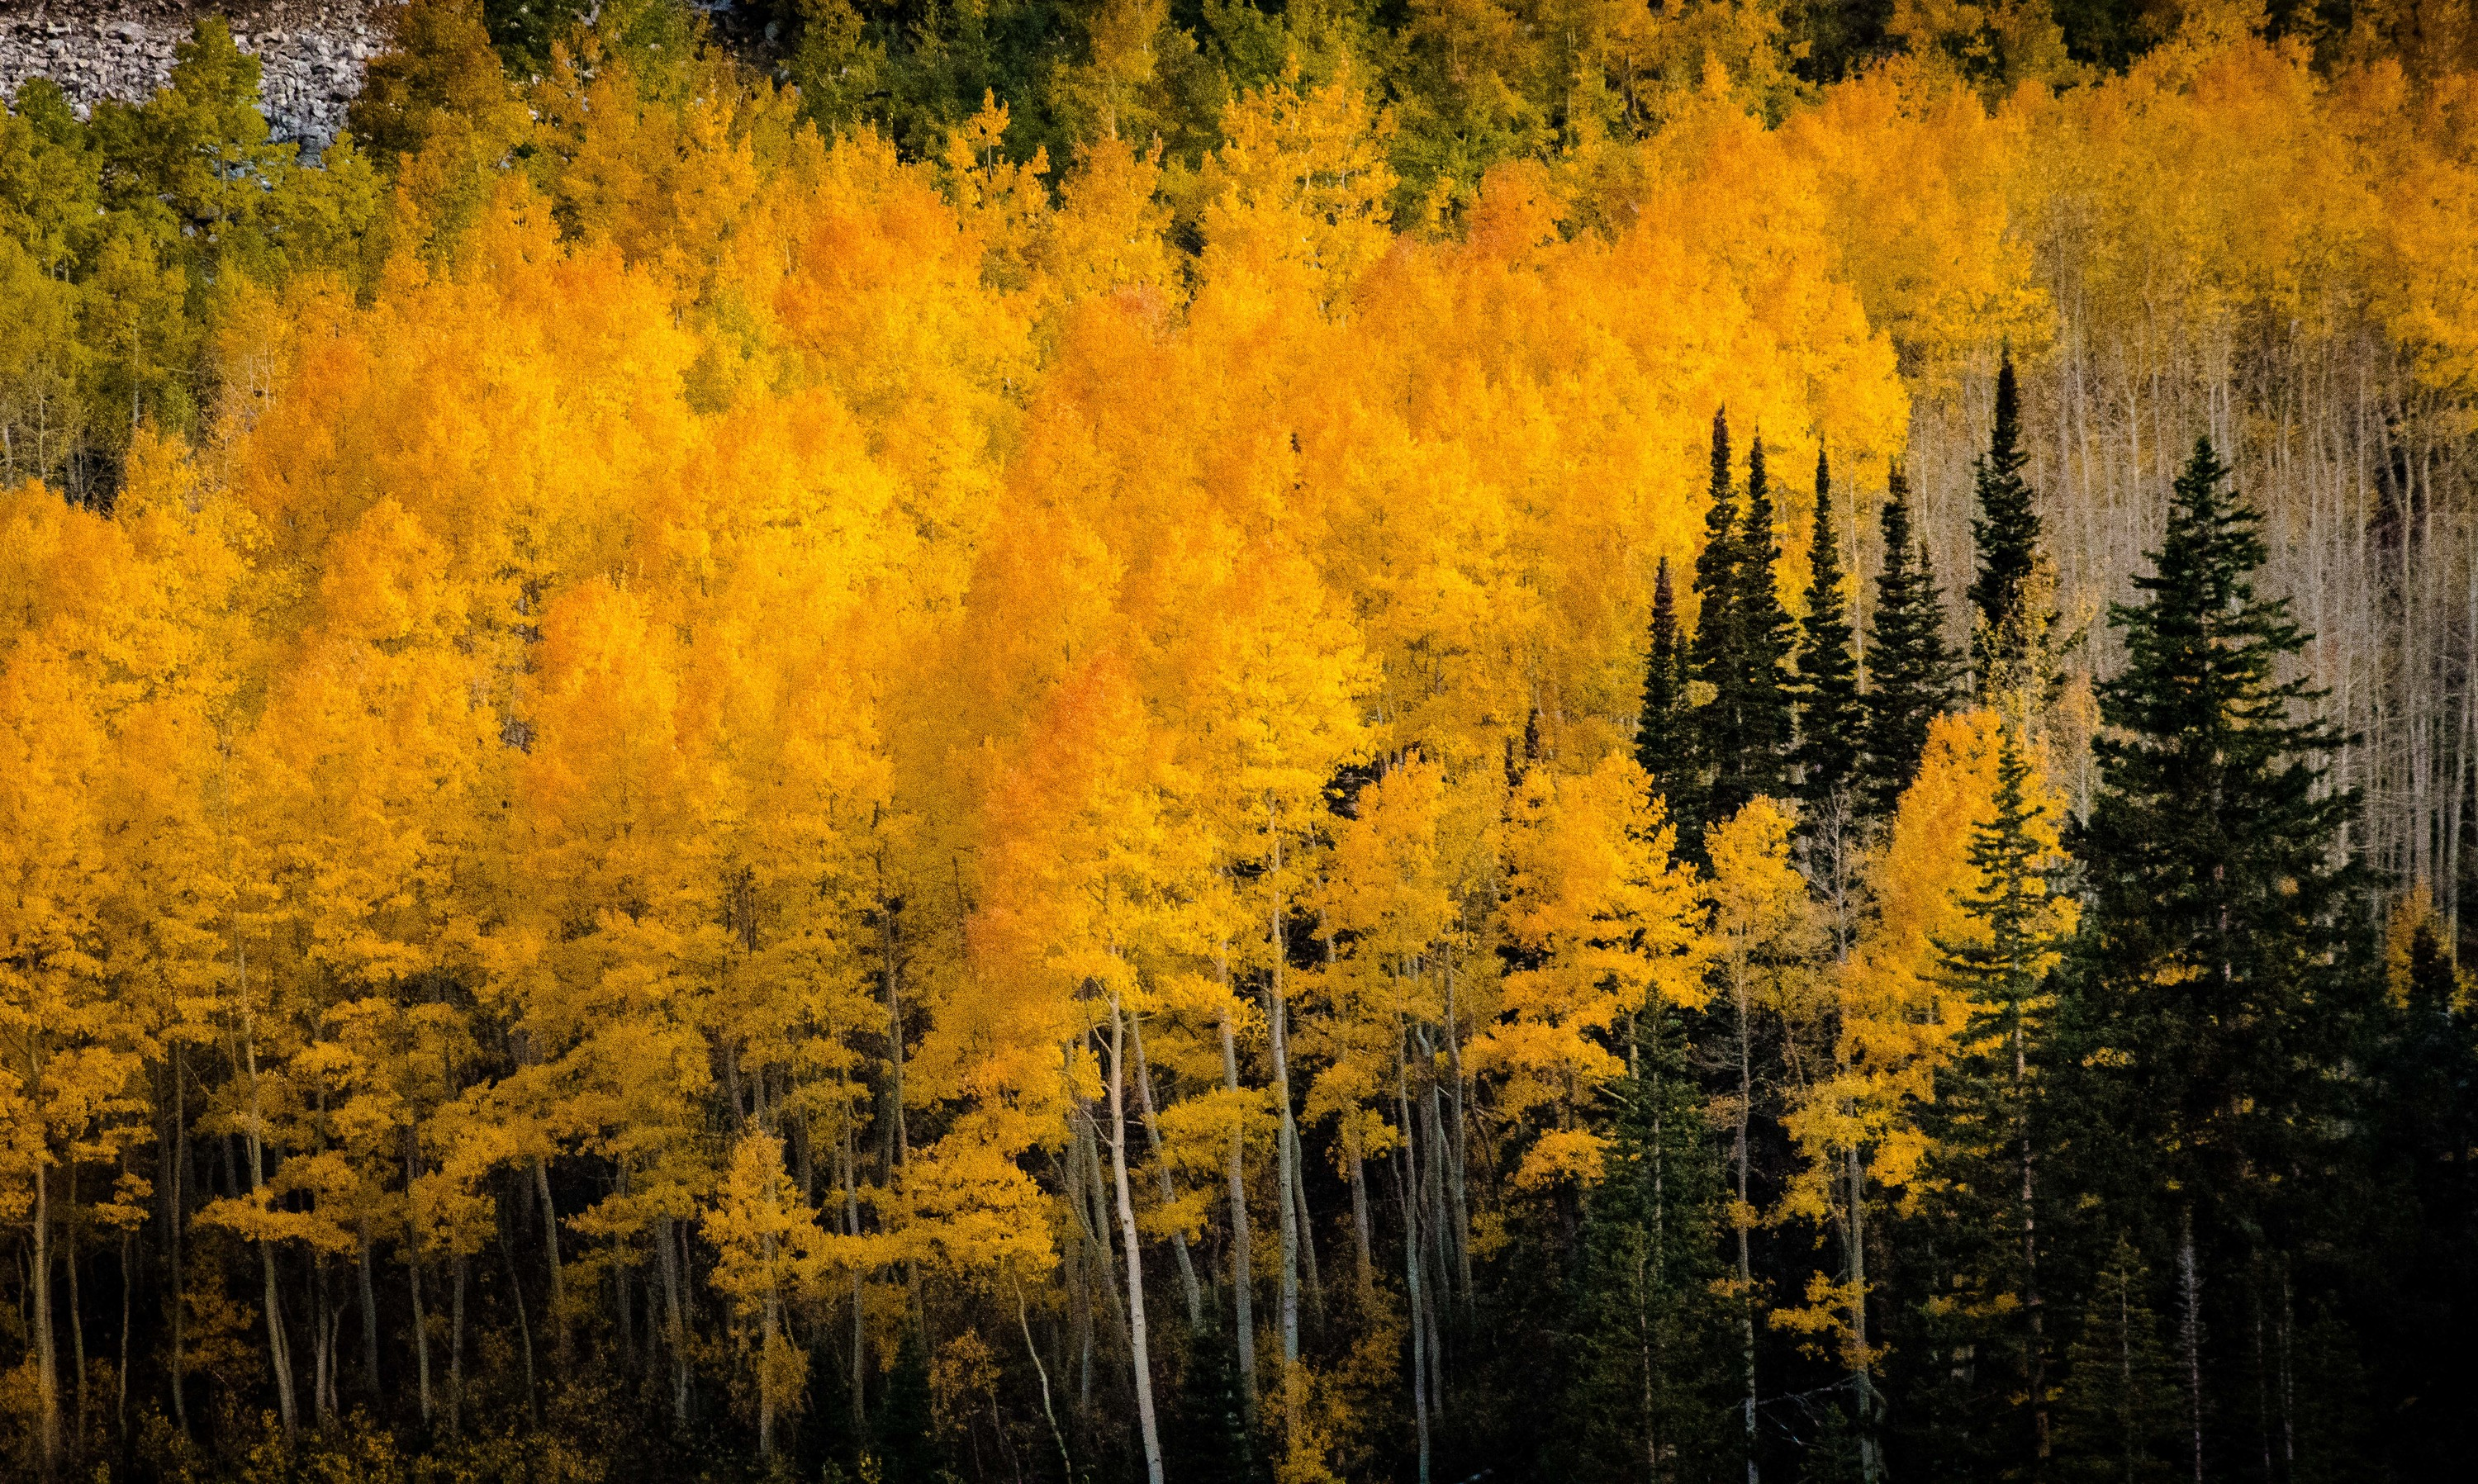 <div class='title'>           Brighton Aspens         </div>                 <div class='description'>           Details on Aspen trees in the late afternoon light at Brighton resort, Utah. October, 2016.         </div>